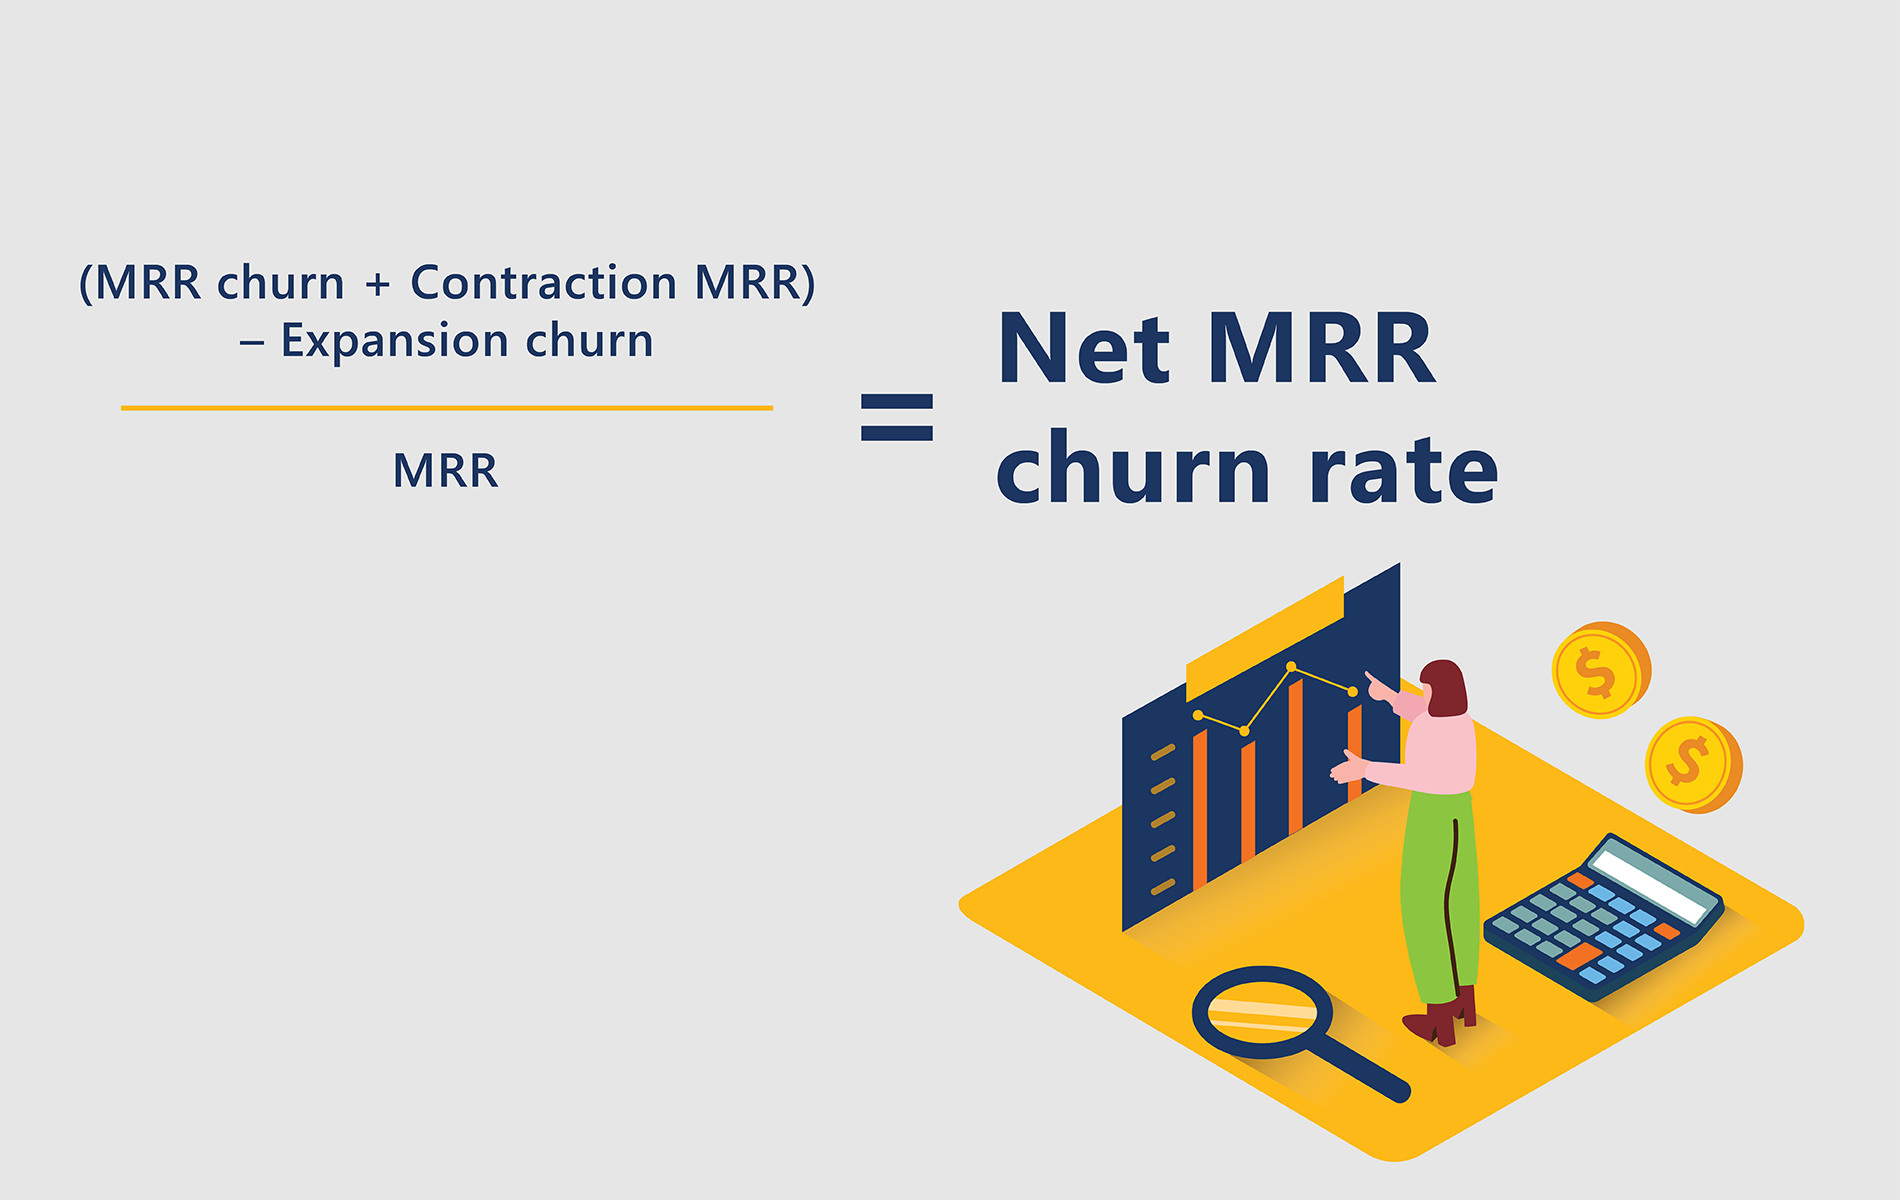 Subscriber churn metrics – net MRR churn rate